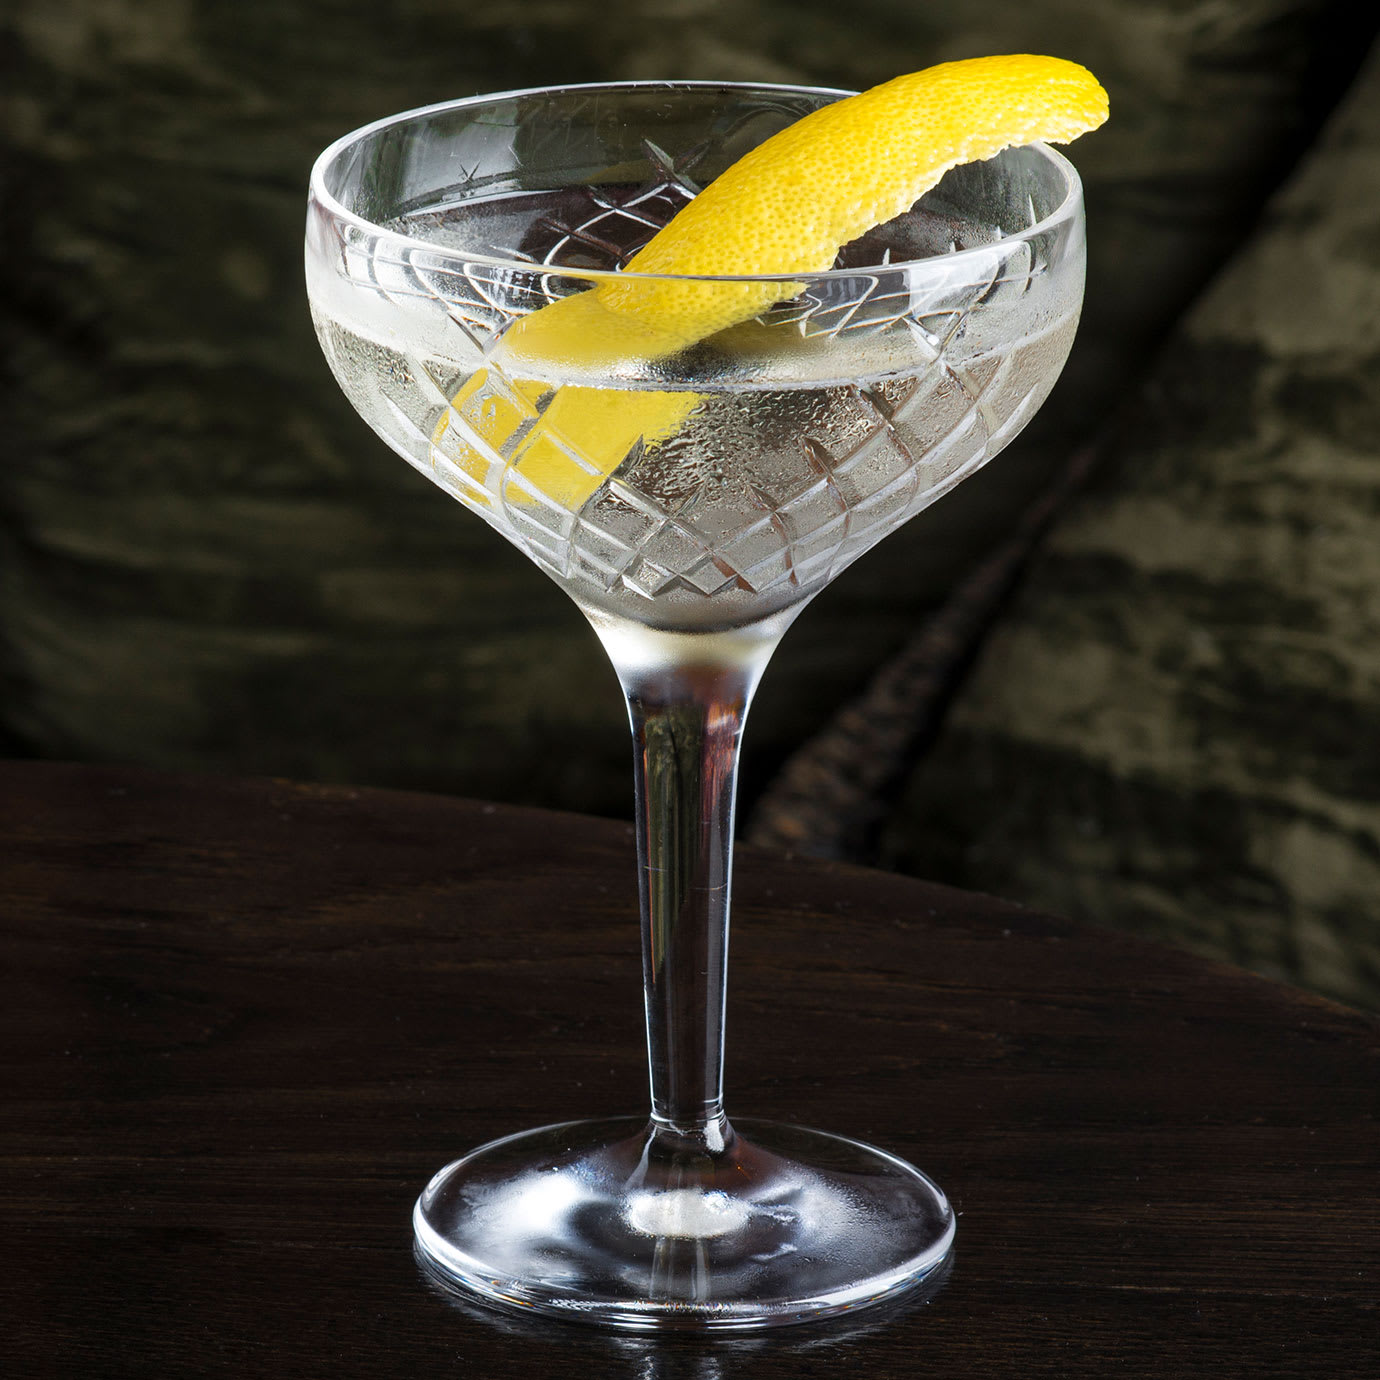 A cocktail with a slice of lemon peel in it.